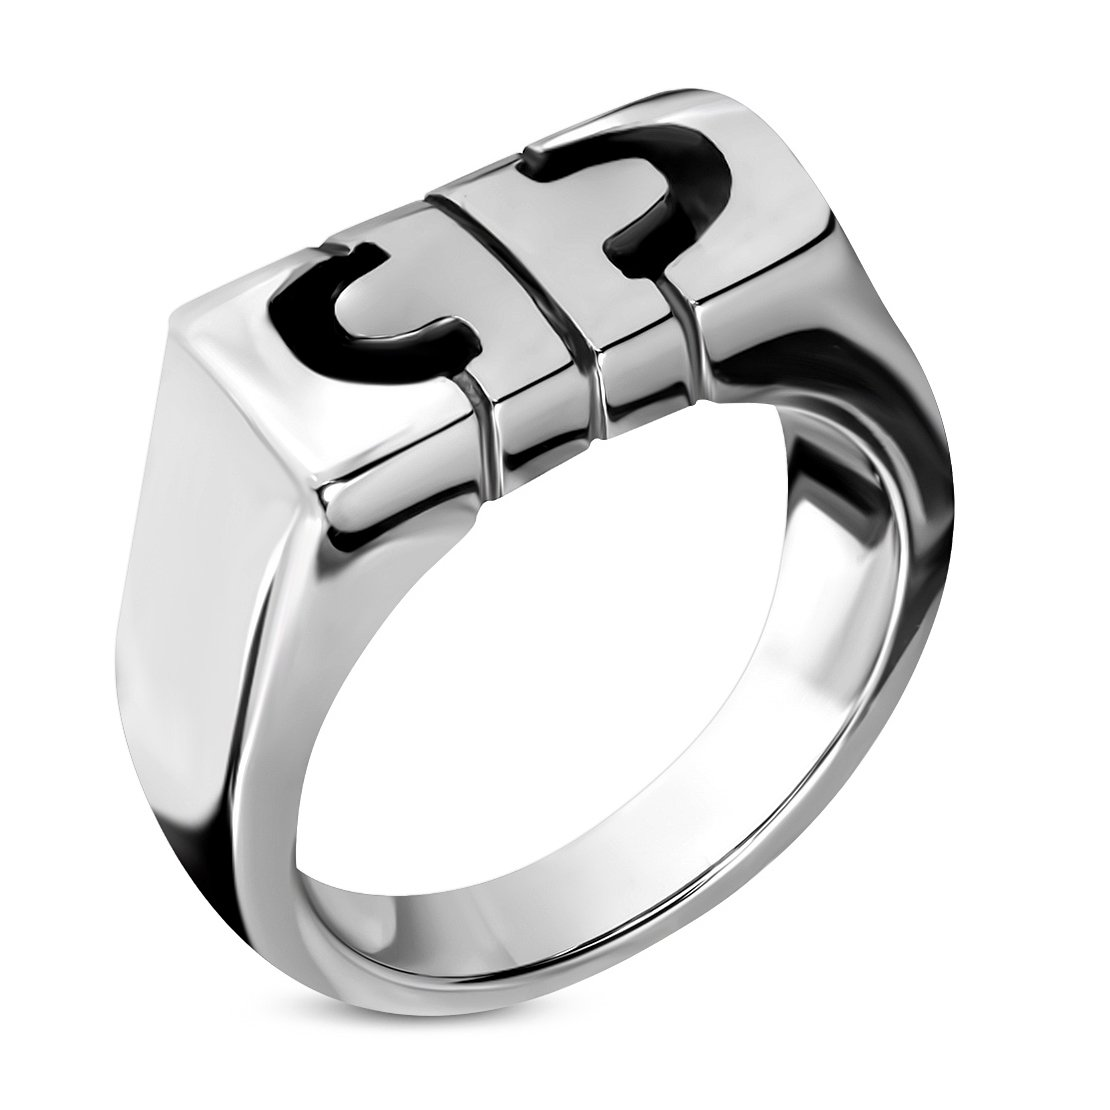 Stainless Steel Cut-out Alphabet C Geometric Ring